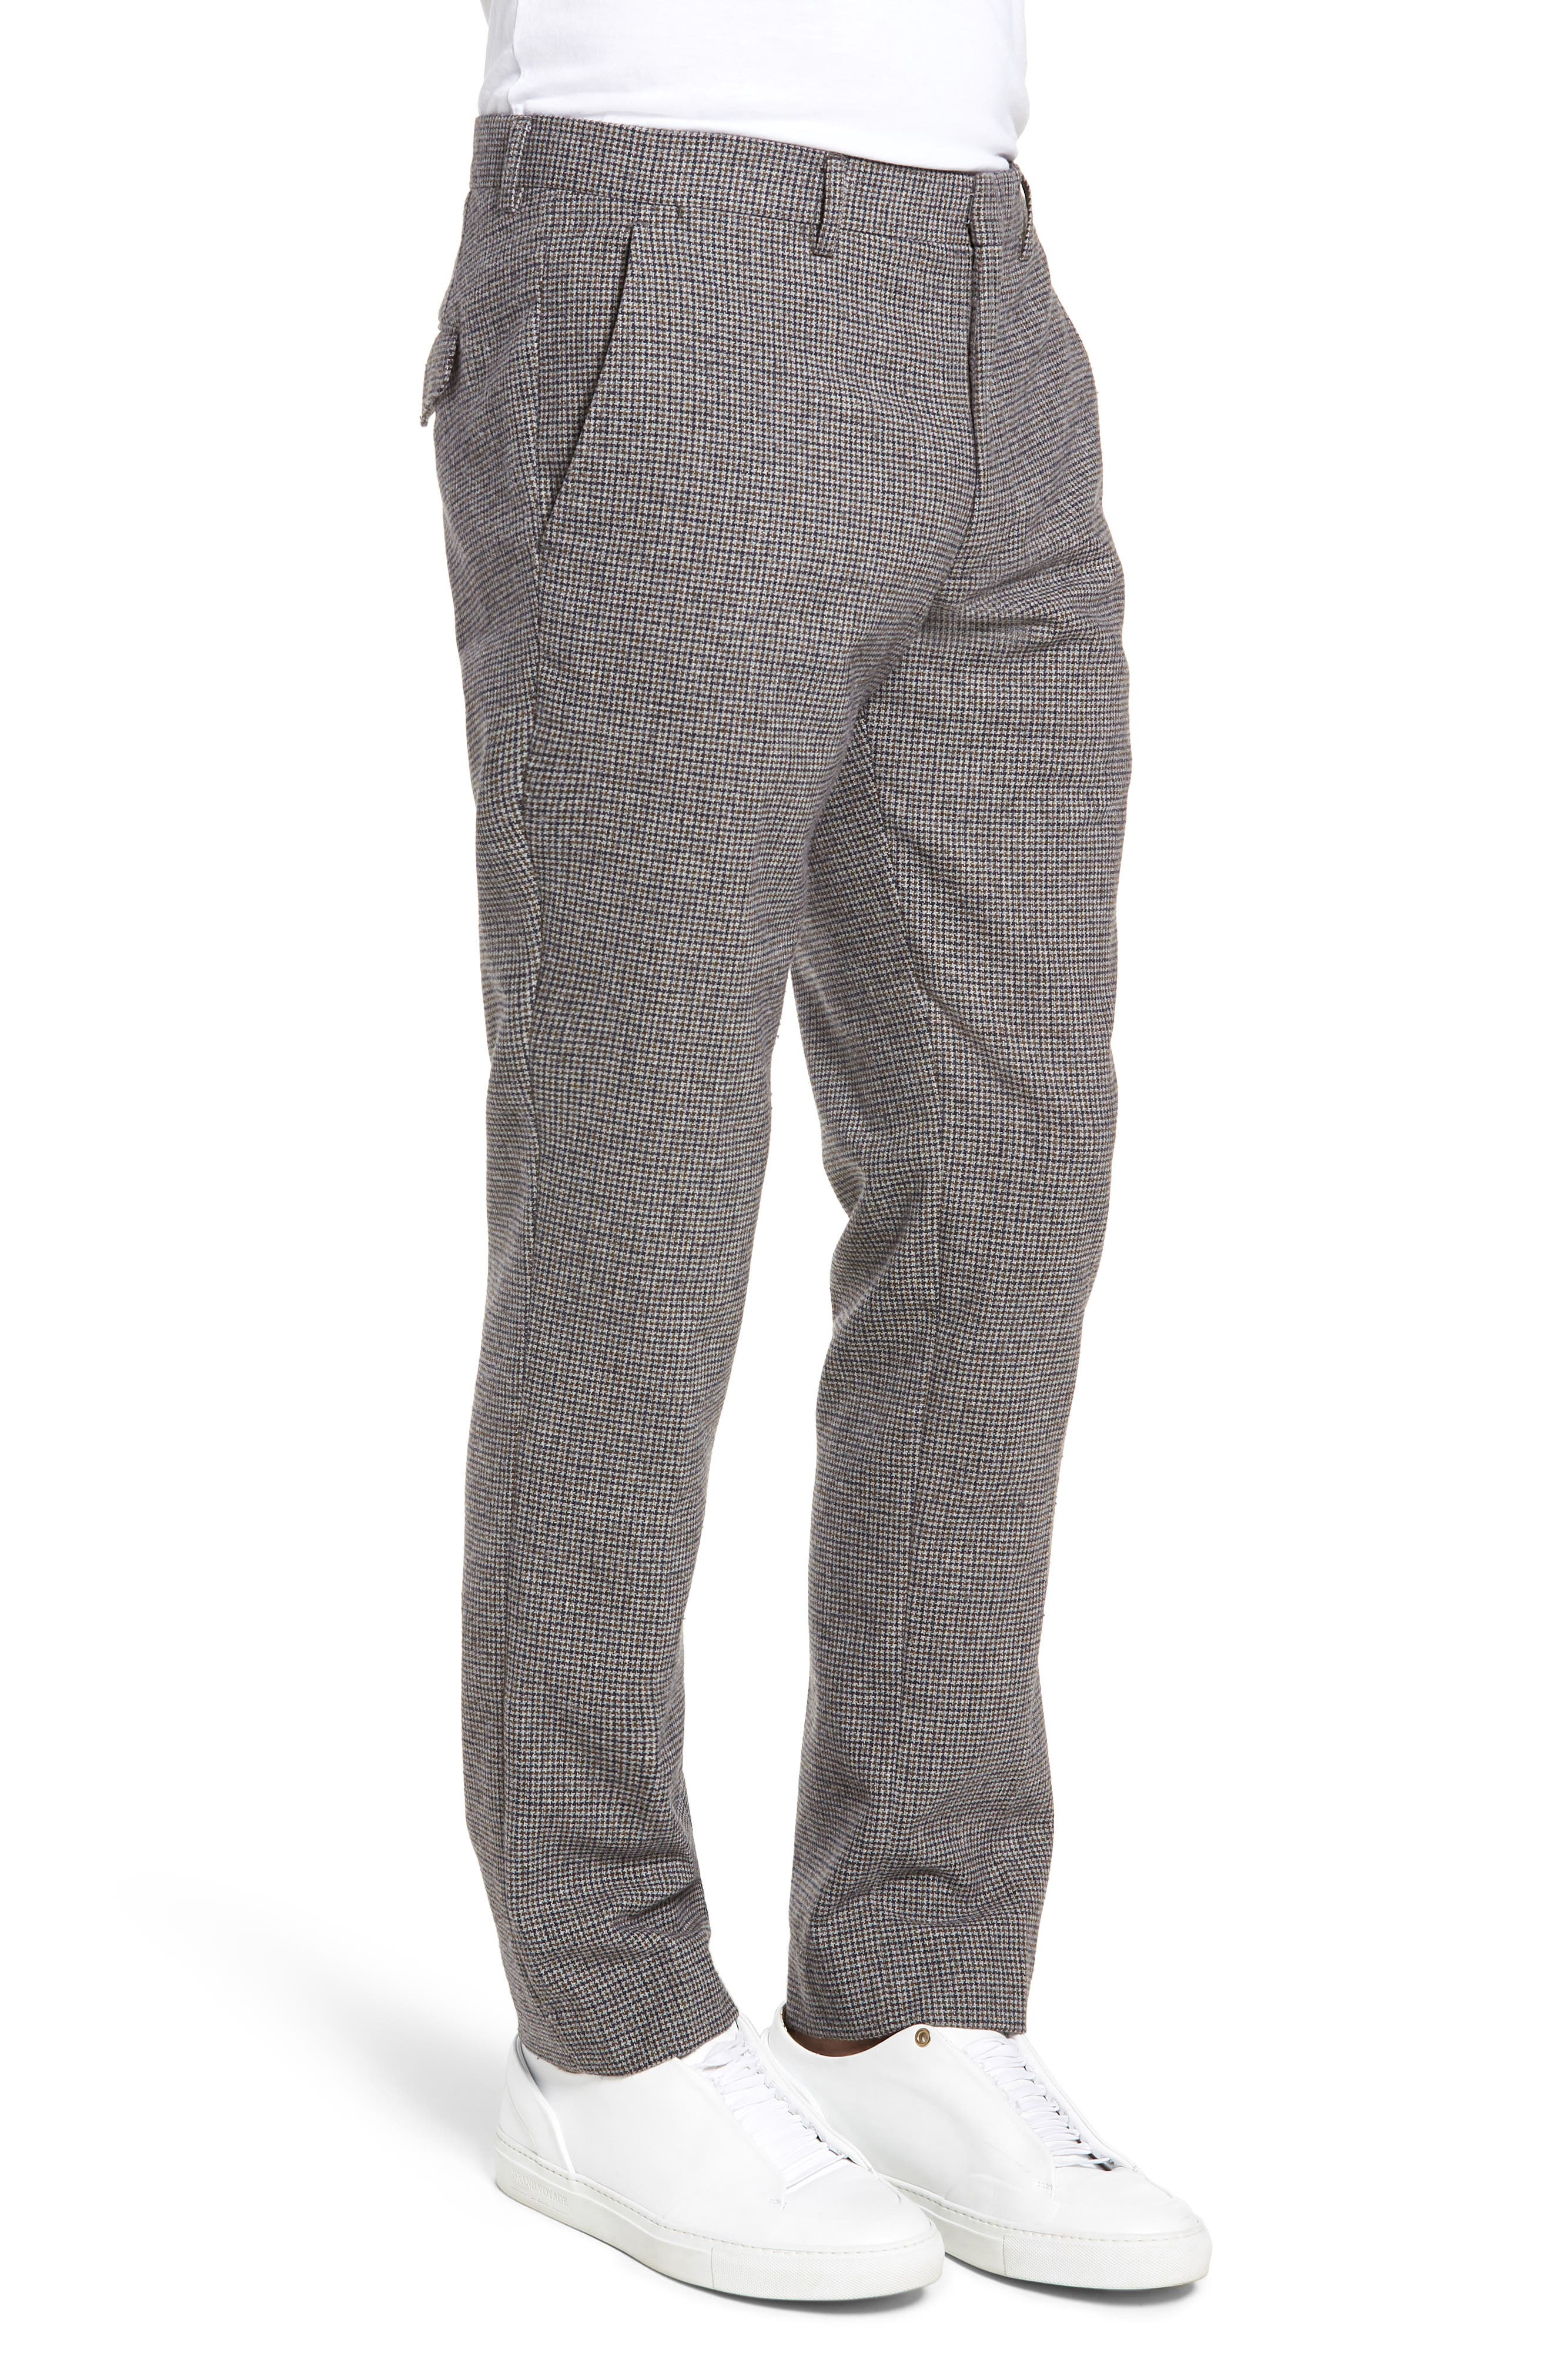 Houndstooth Trousers,                             Alternate thumbnail 3, color,                             DARK GREY